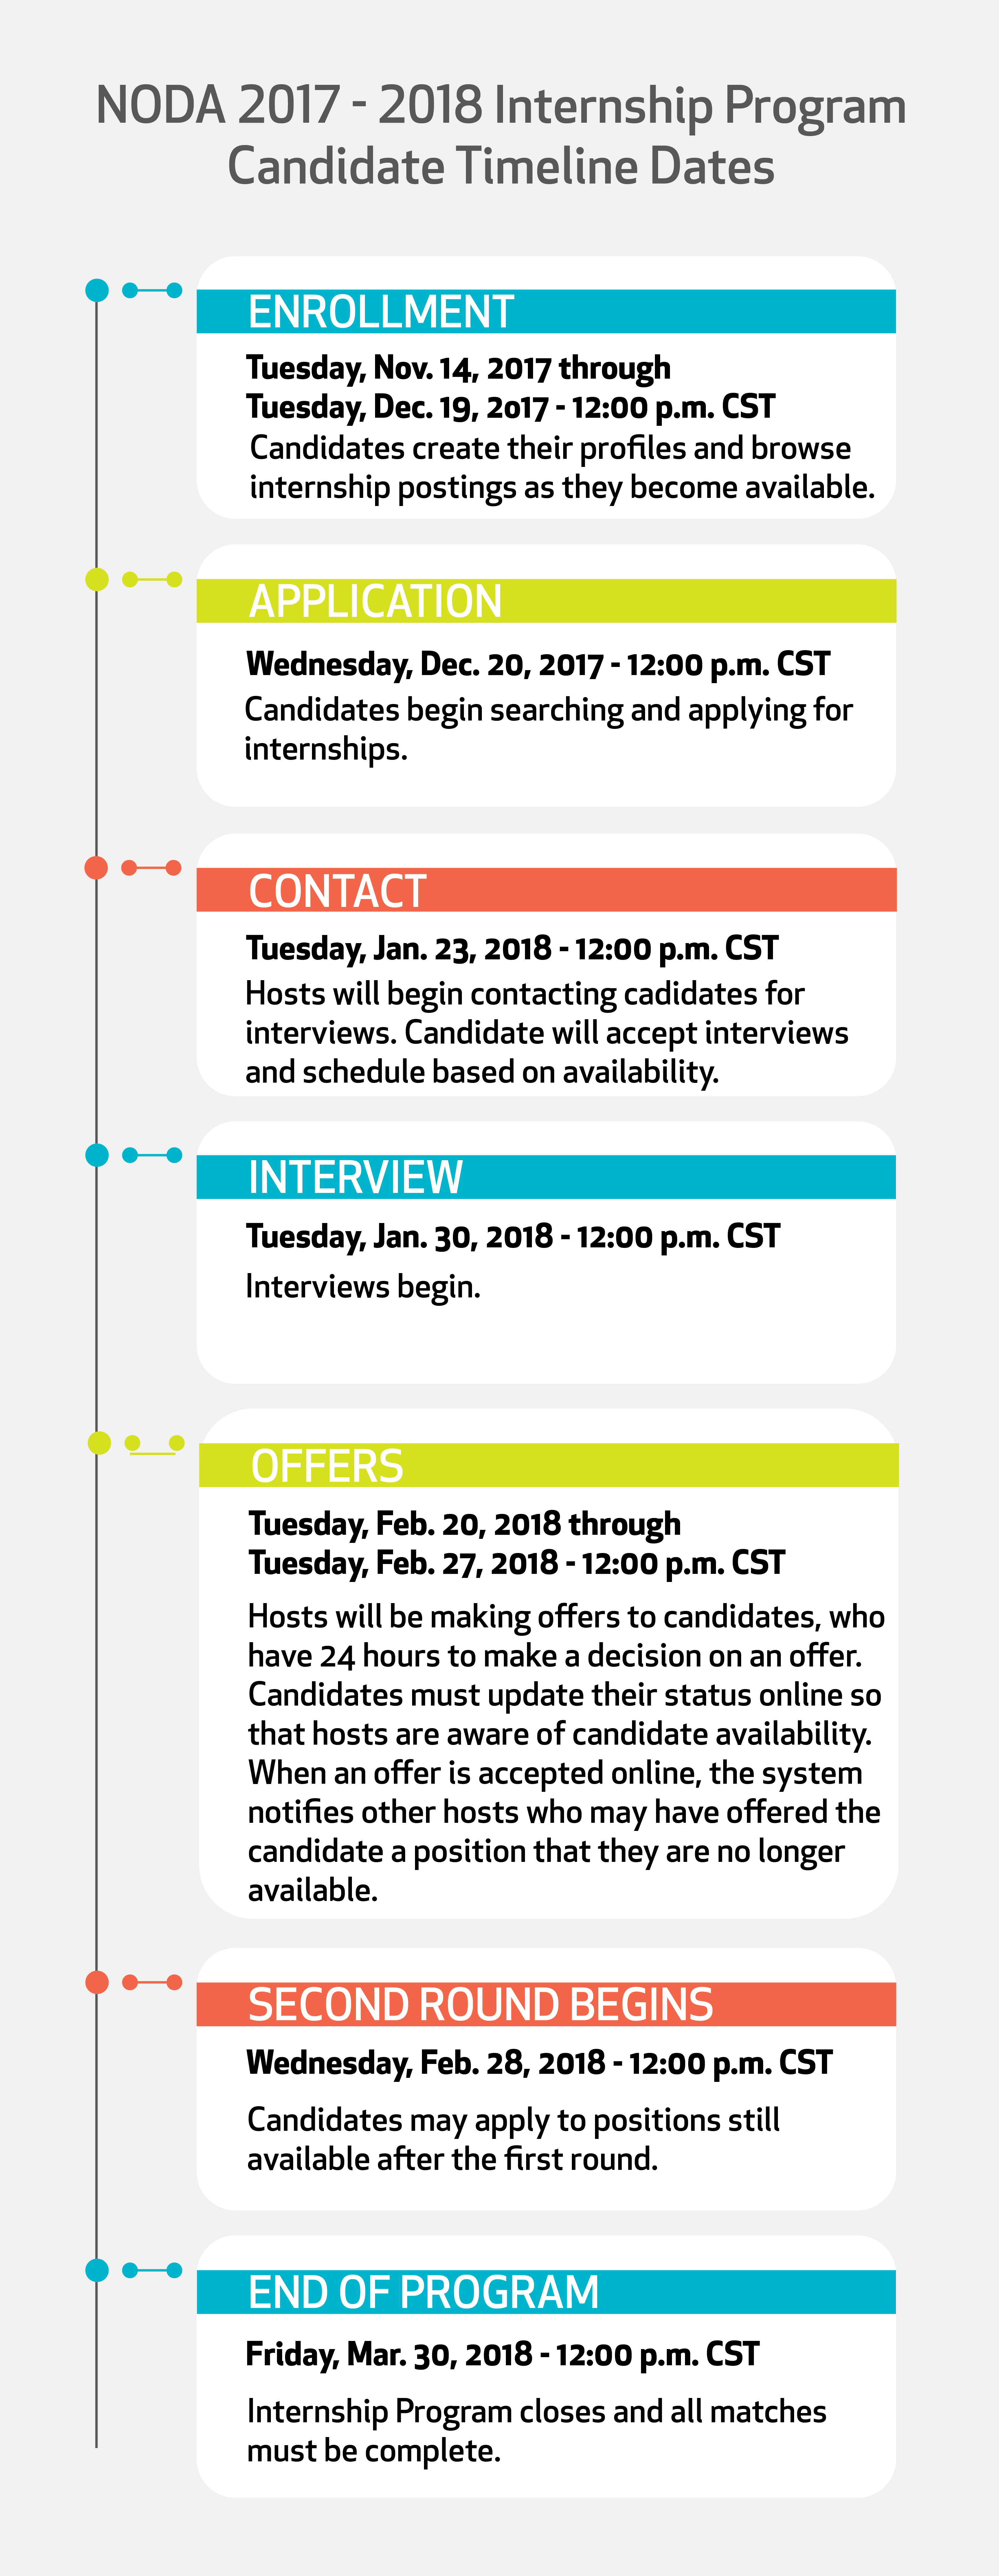 Noda internship candidate information noda candidates will be able to see the hosts availability for interviews within the online system and request interview times altavistaventures Gallery